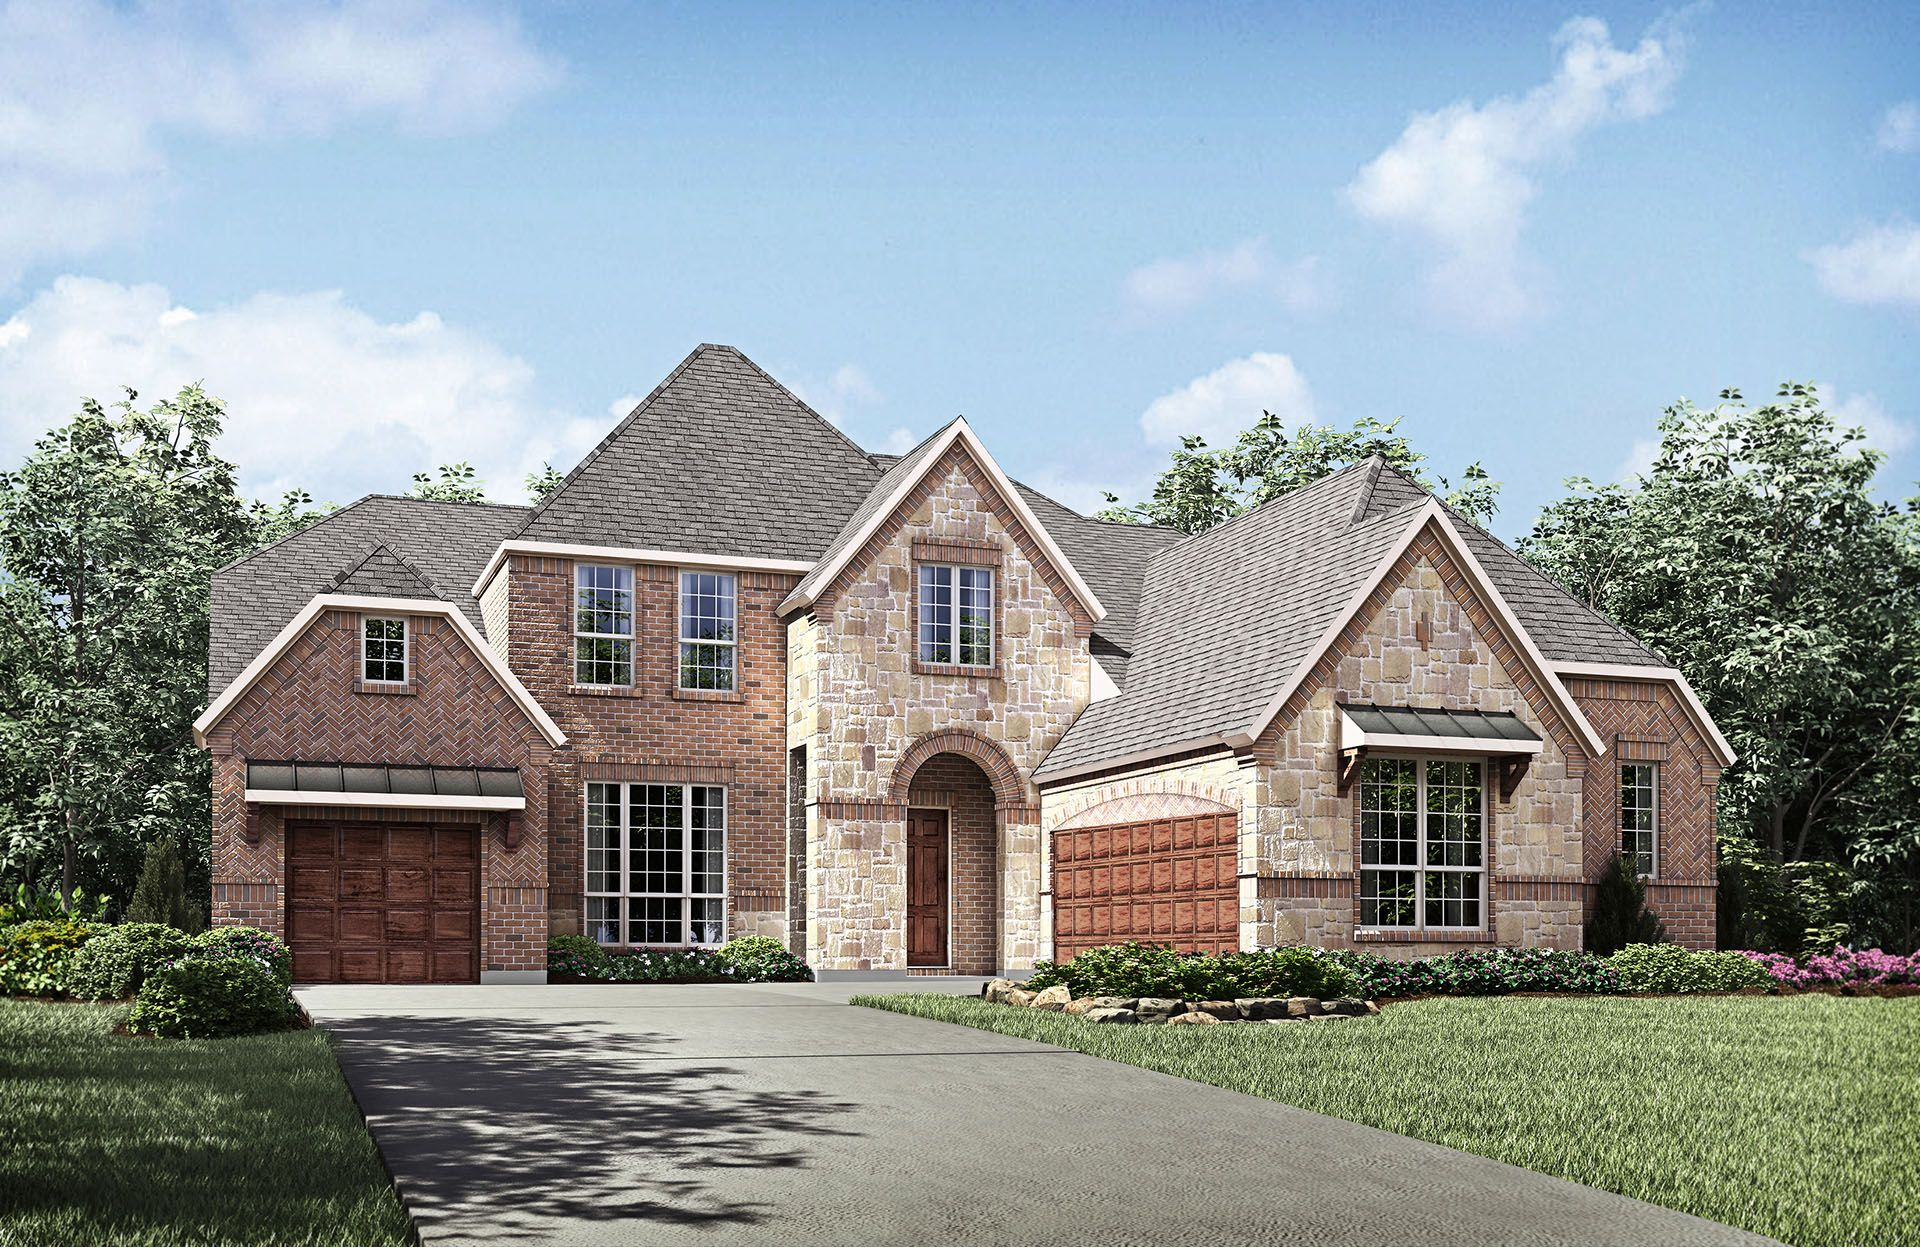 Single Family for Active at Woodtrace - Brinkley 33923 Redwood Park Pinehurst, Texas 77362 United States